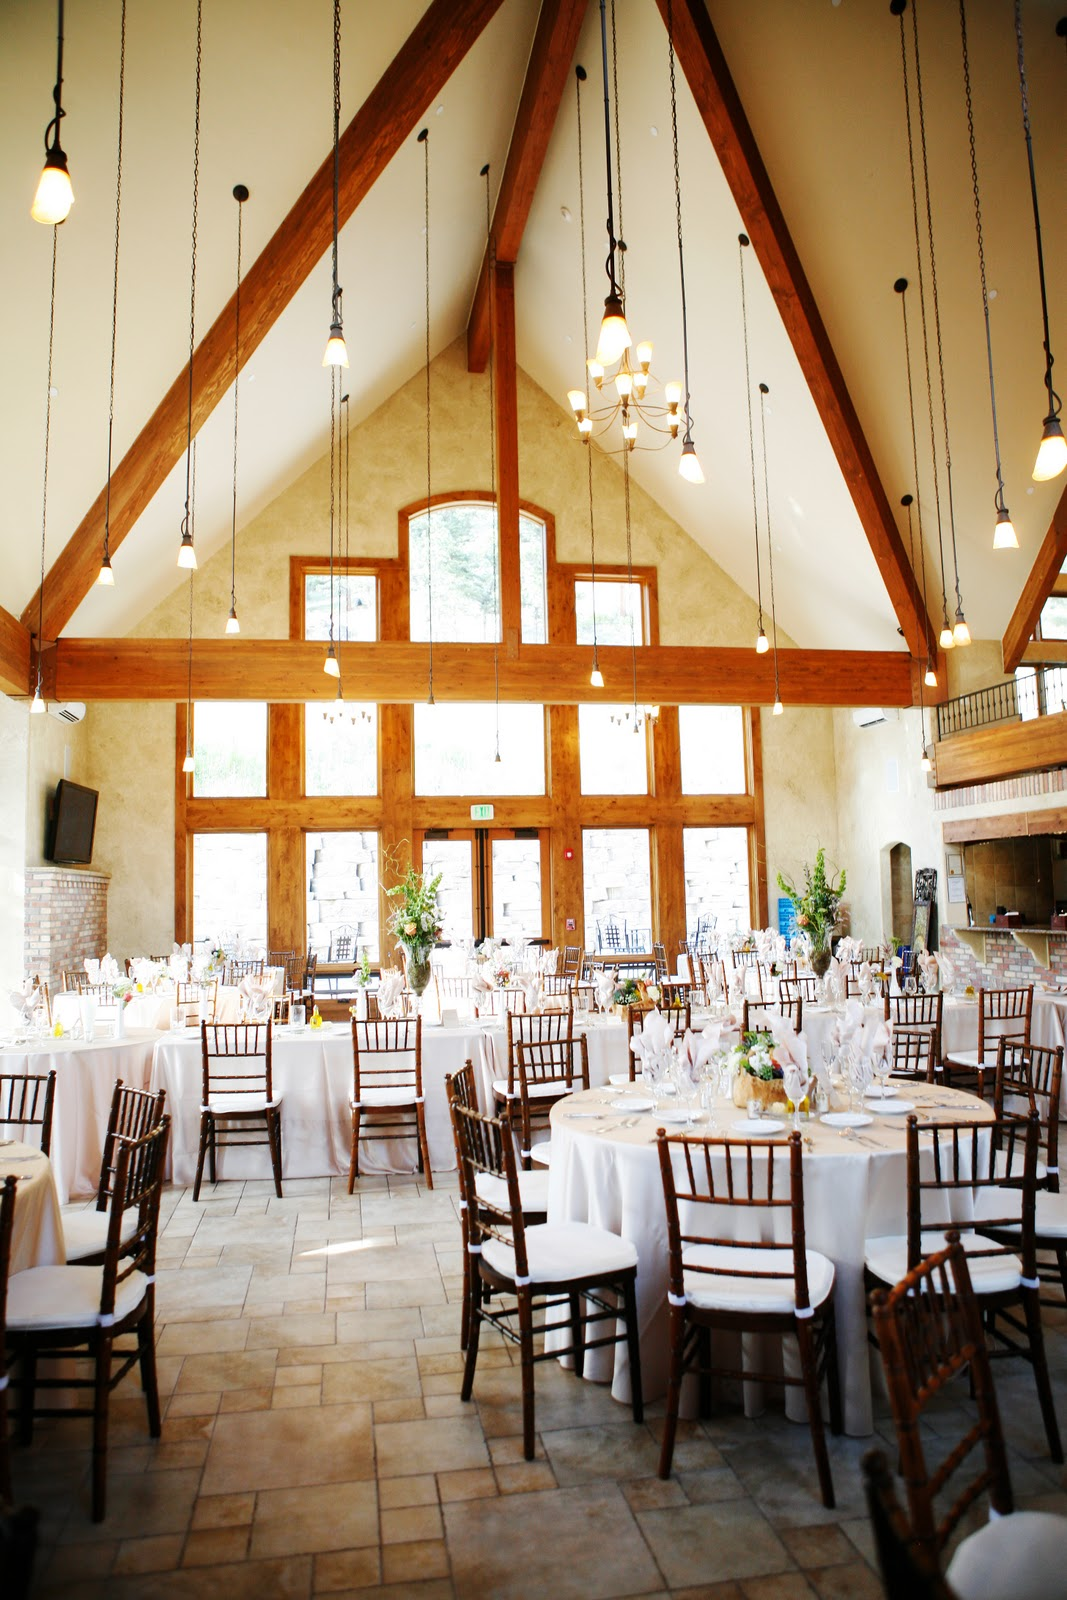 Calluna events top 10 colorado wedding venues our picks jenna walker photographers junglespirit Choice Image